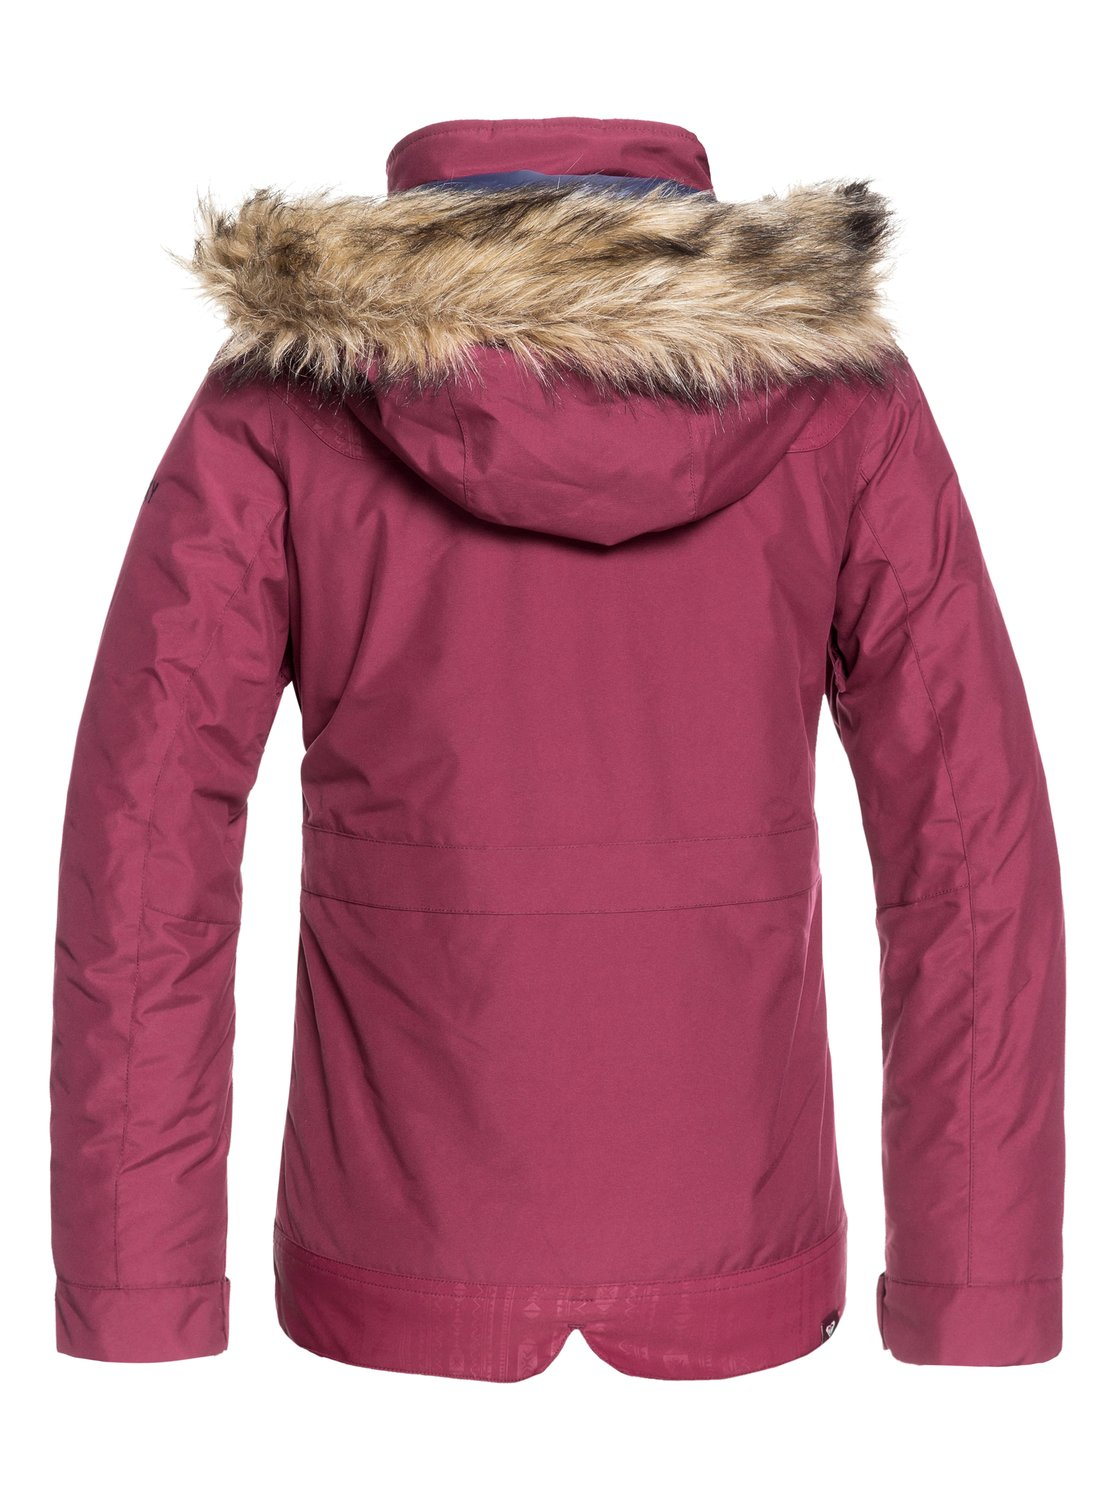 94a4a29d1ca6 Tribe - Snow Jacket for Girls 8-16 3613373664792